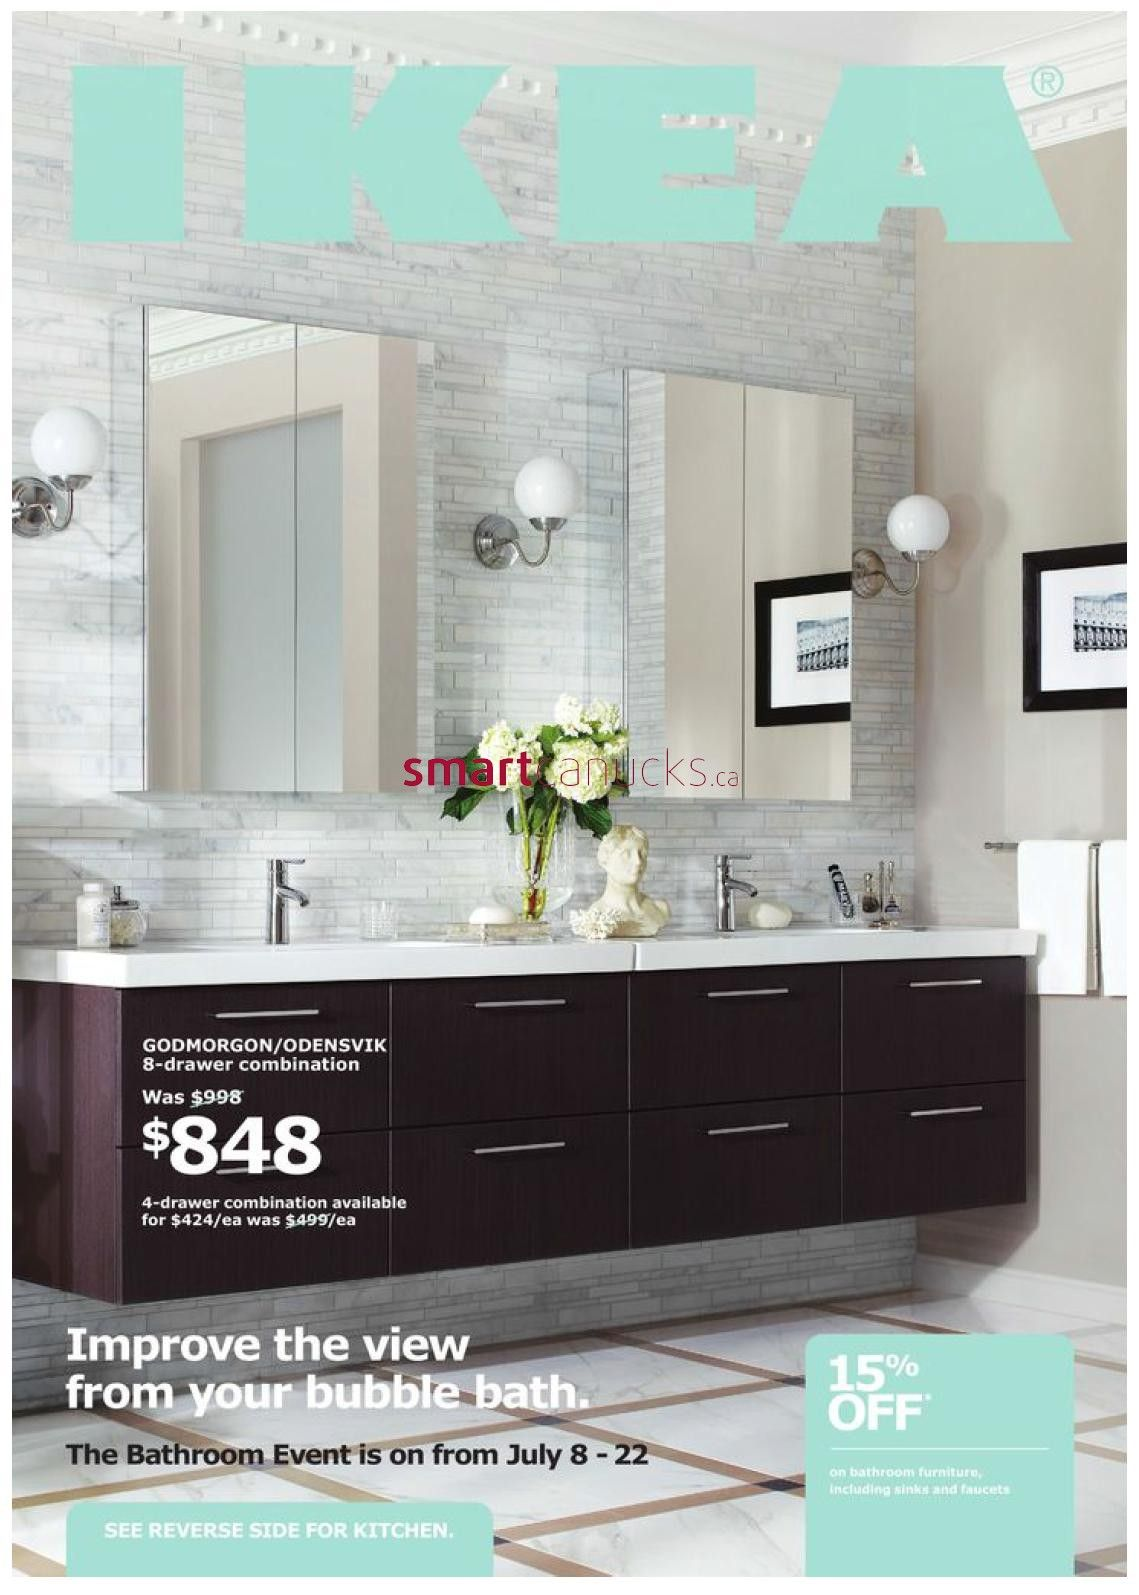 just half ikea godmorgonodensvik sink cabinets with four drawers and lillholmen wall lamps and dalskar bath faucets and godmorgon mirror cabinets - Bathroom Design Ideas Ikea